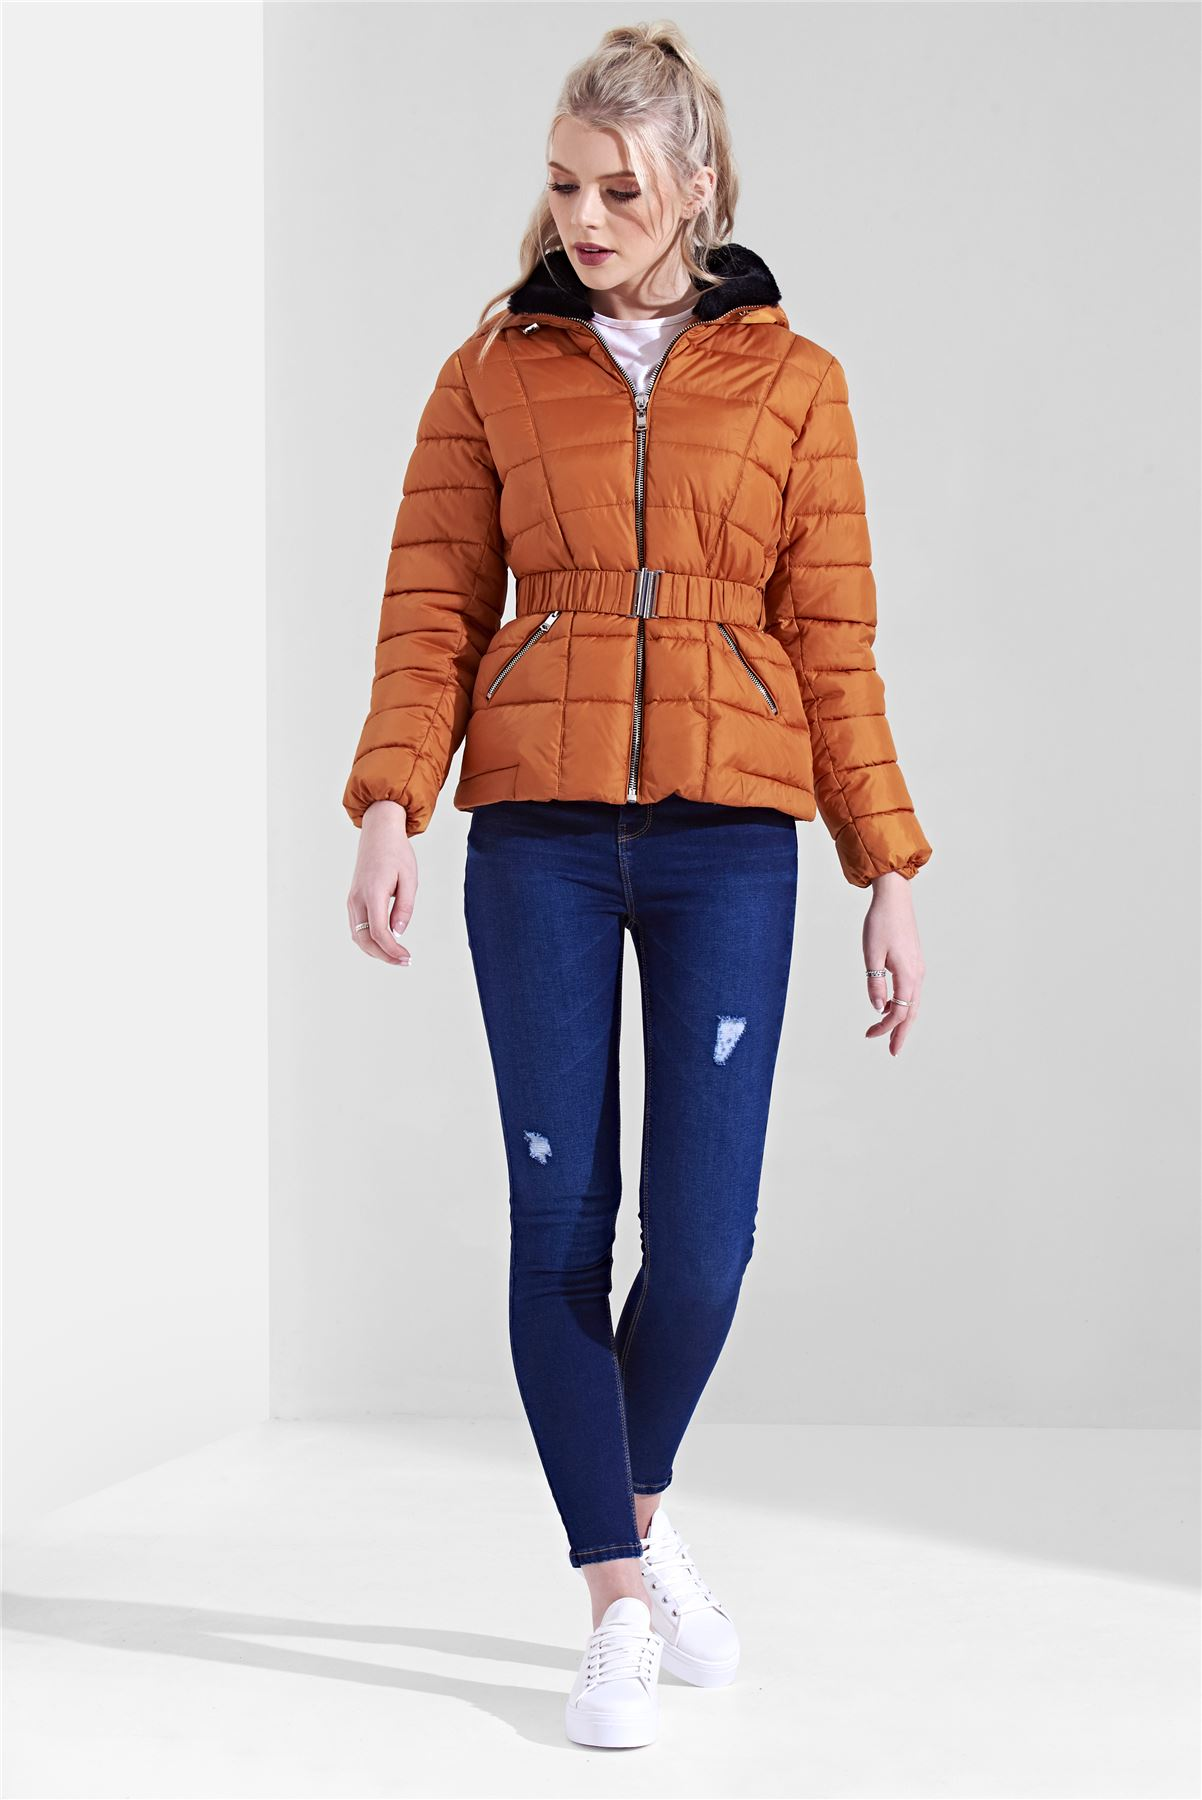 Womens-Ladies-Black-Hood-Belted-Fur-Collar-Zip-Up-Quilted-Puffer-Jacket-Coat thumbnail 5